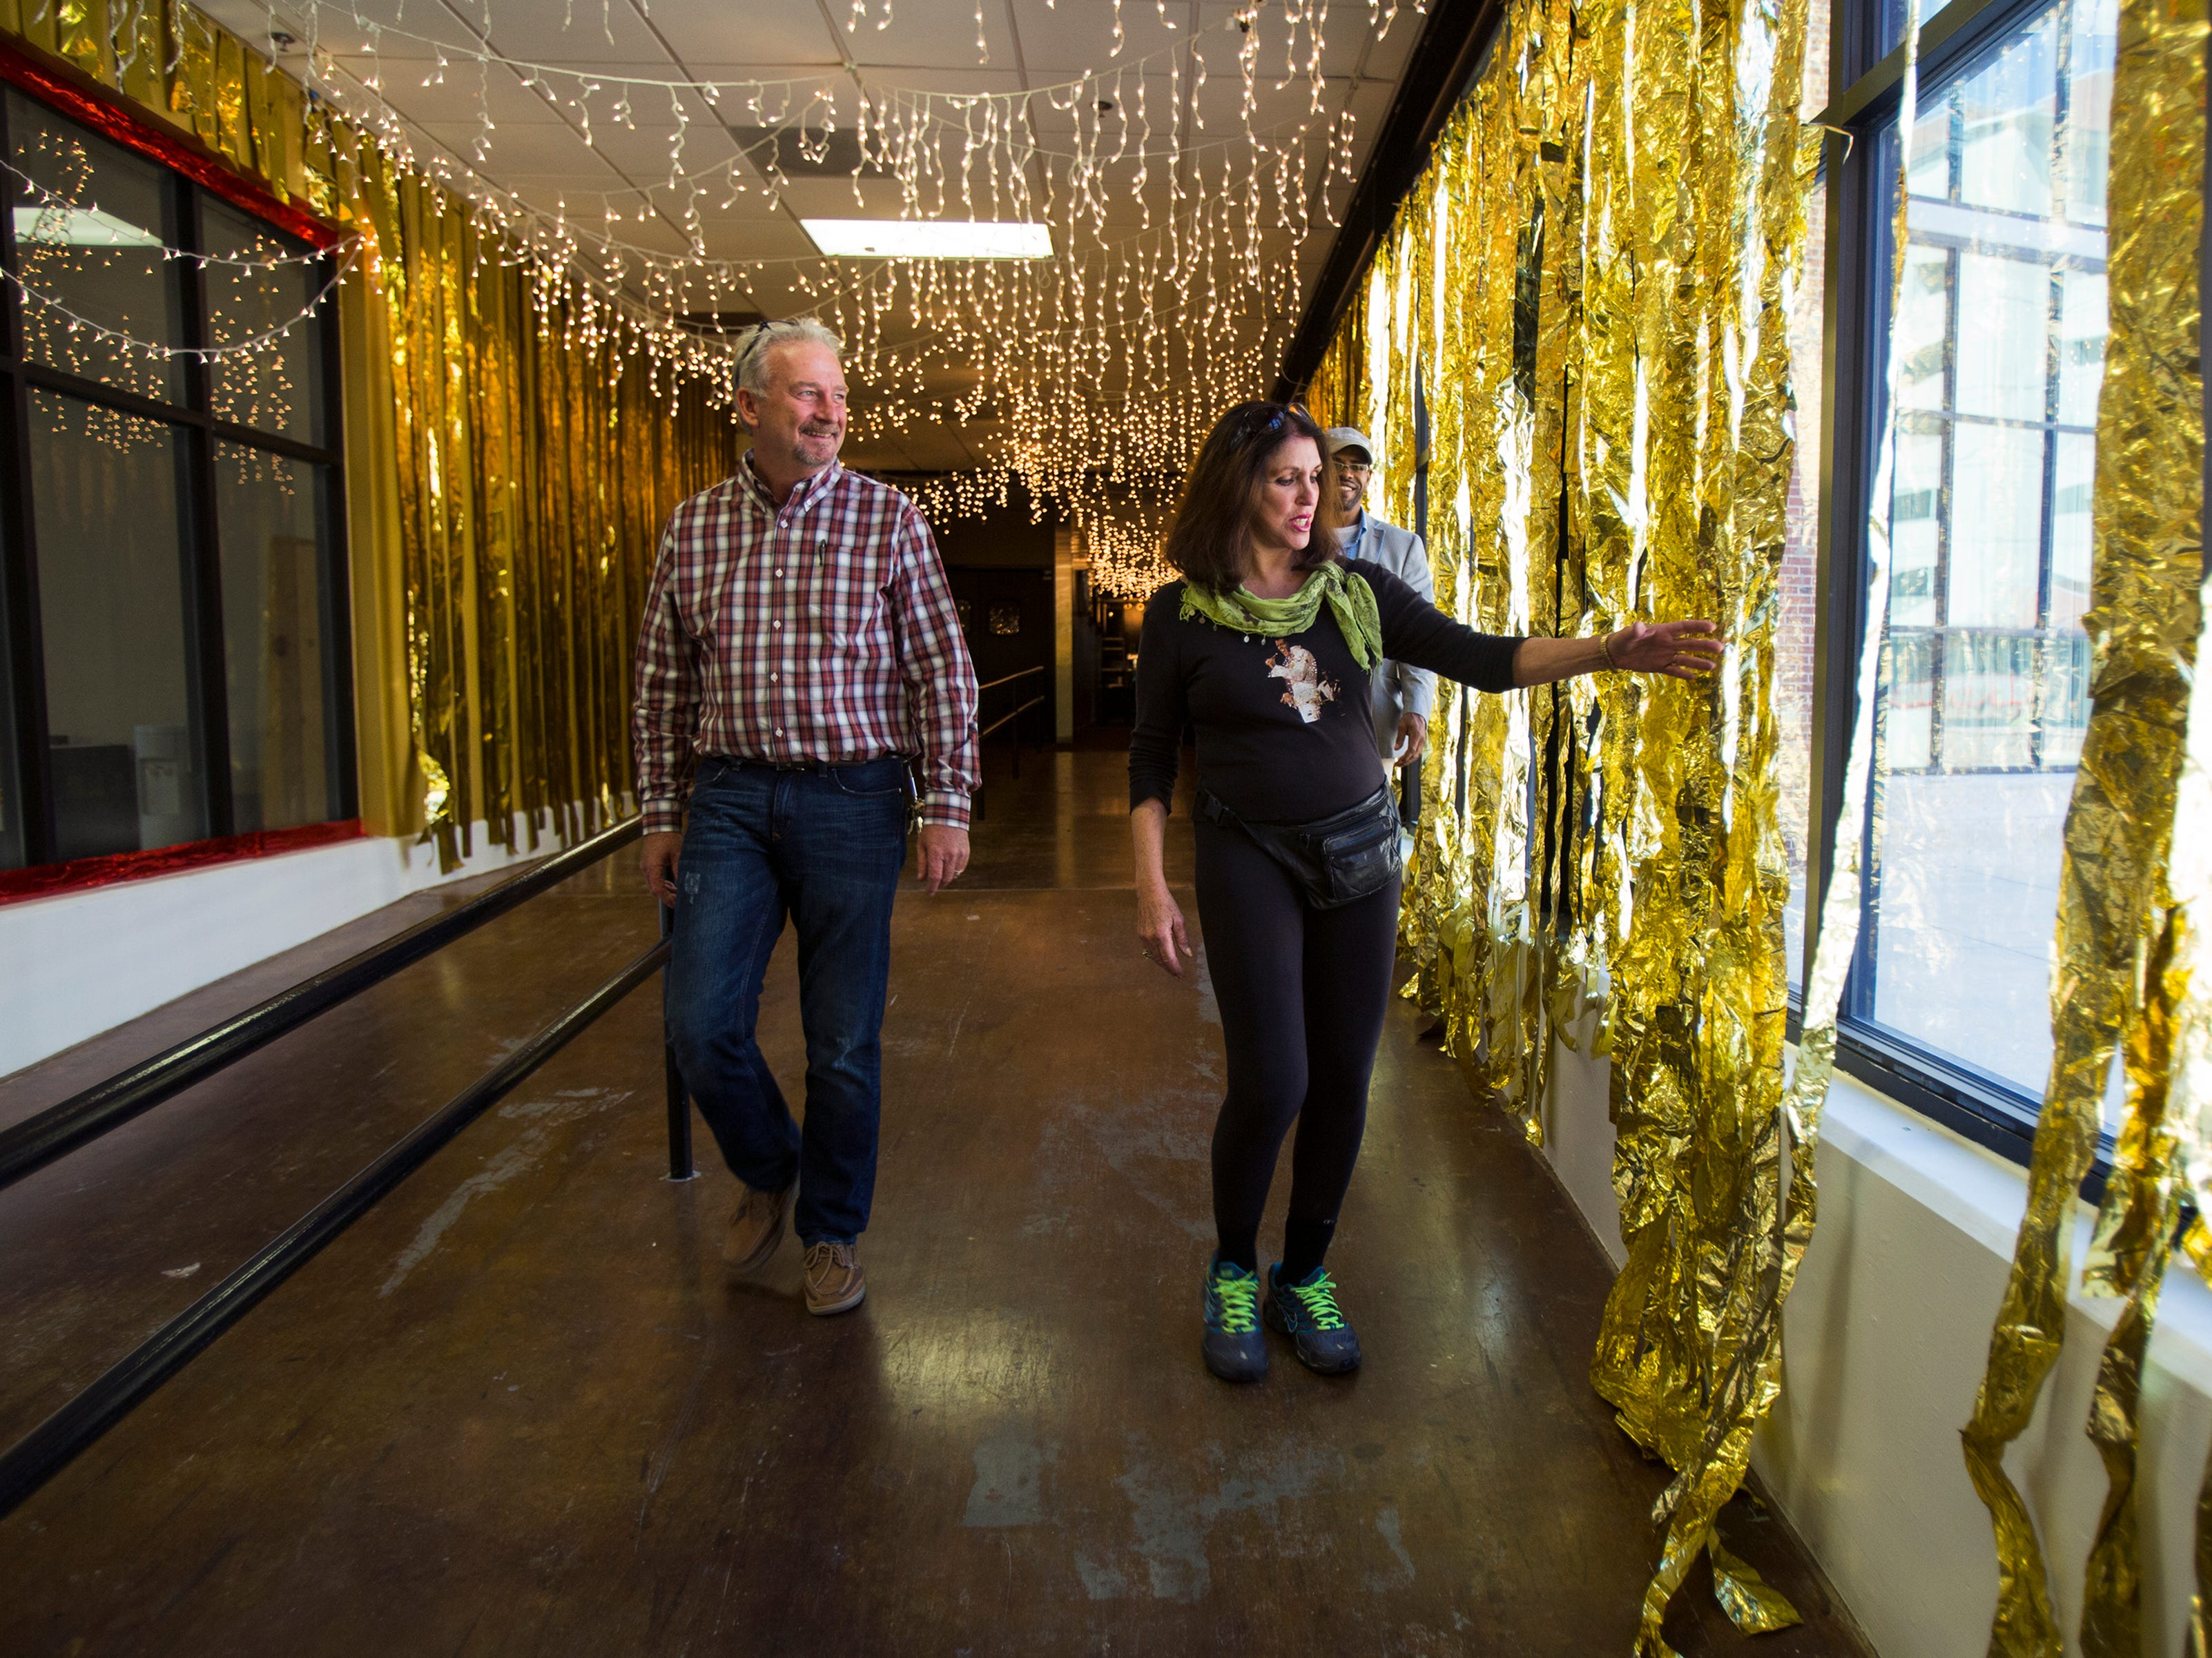 Sept. 23, 2014 - Dave Winters, general manager, Gibson Custom Shop, receives a quick tour by Pat Kerr Tigrett, founder and general chairman of the Blues Ball, as she shows him decorations she and her team have installed at the Gibson Guitar Factory.